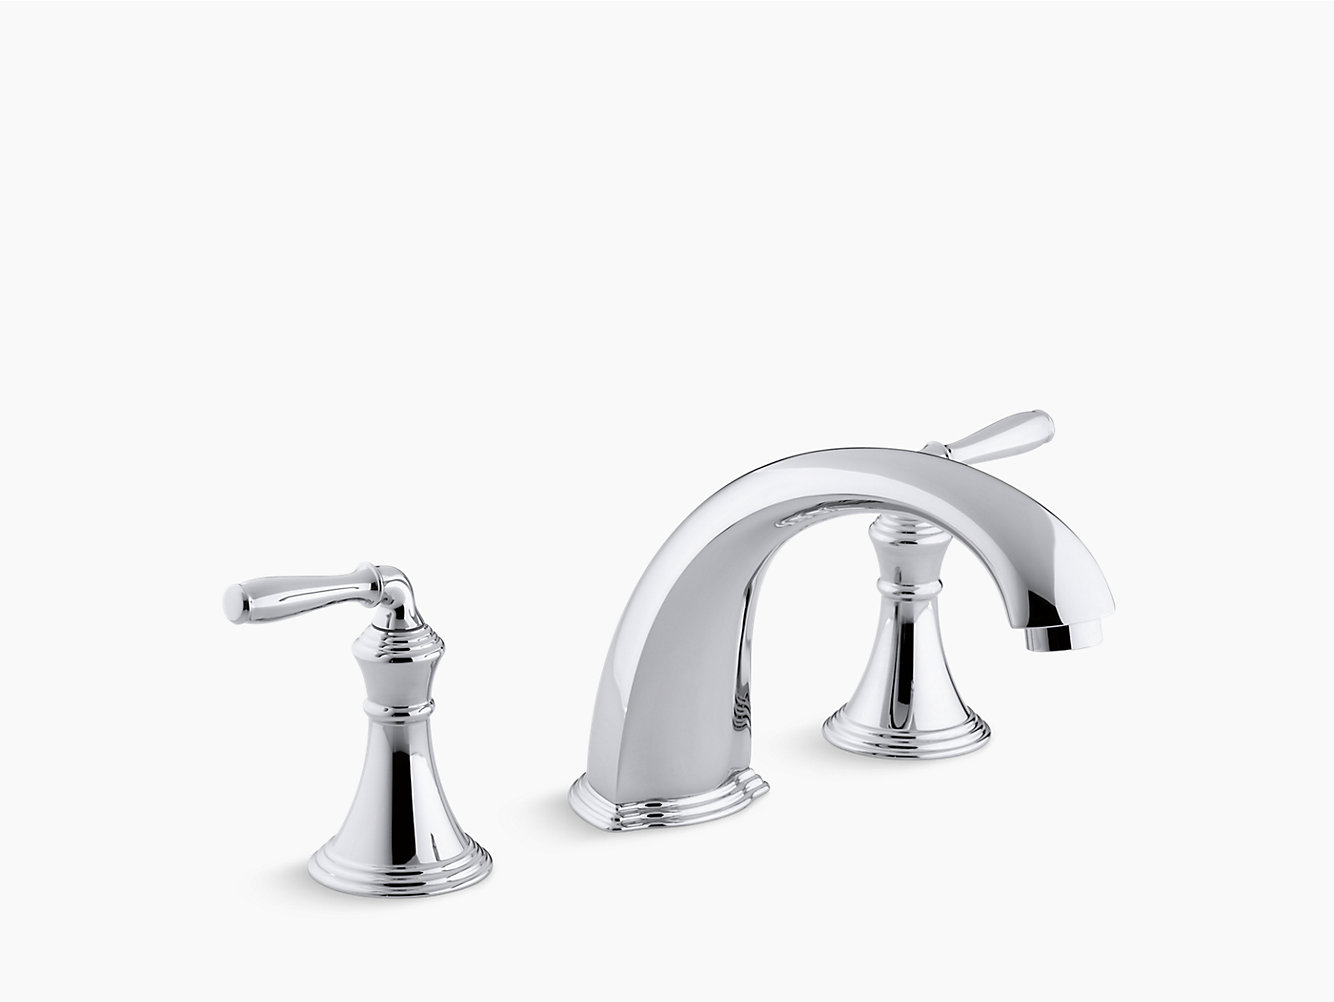 Devonshire Bath Faucet Trim with Spout and Lever Handles | K-T398-4 ...